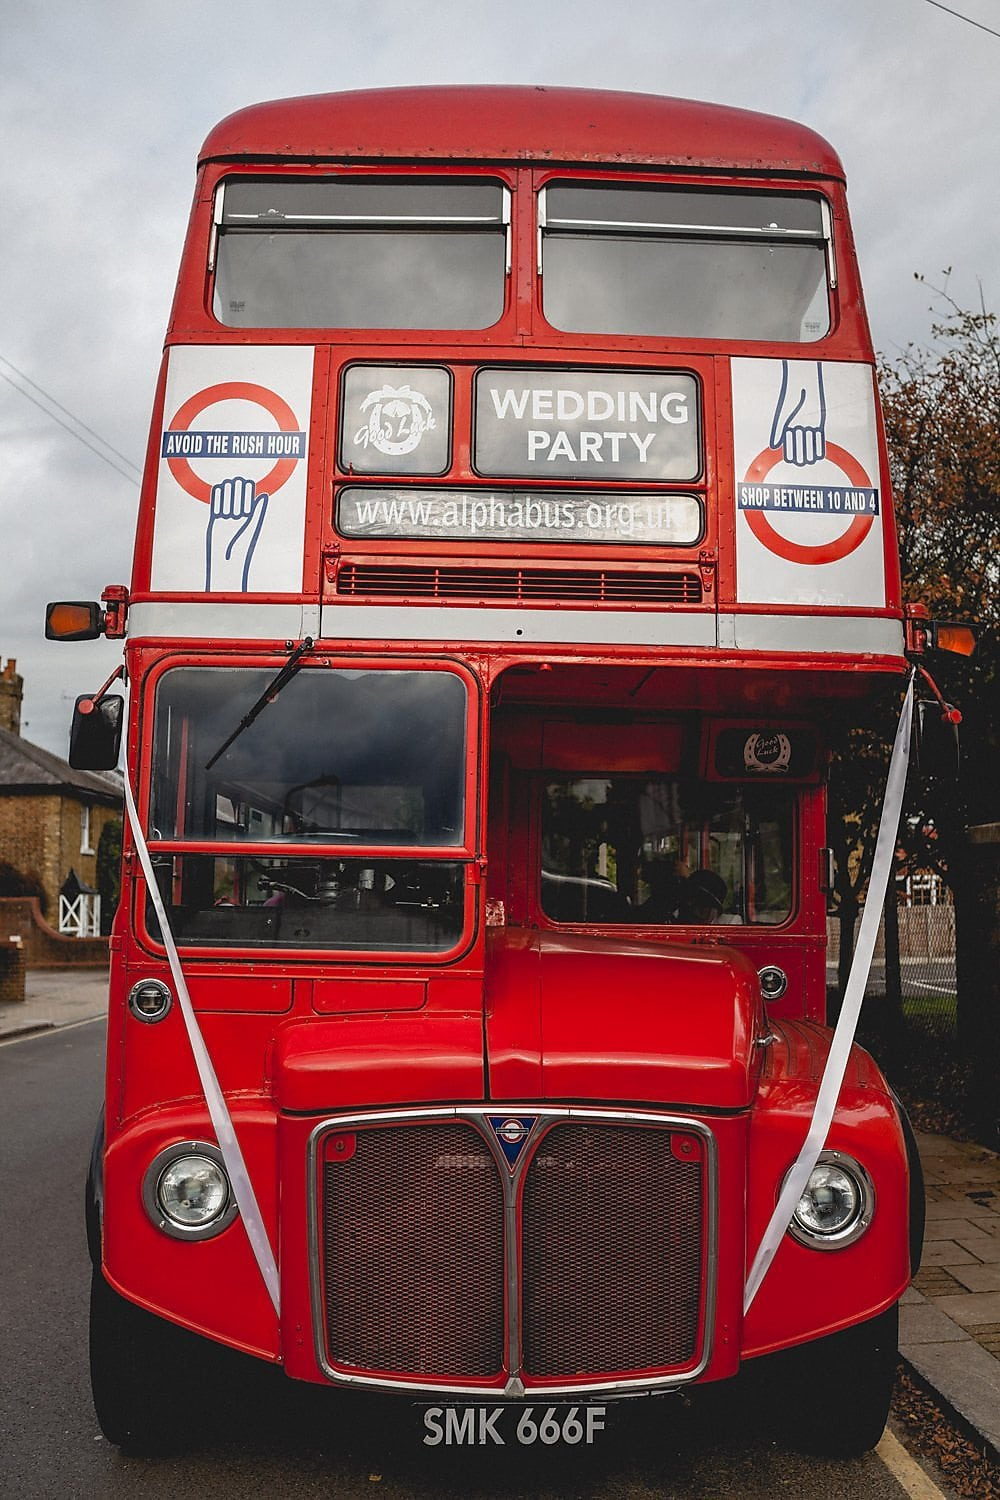 The wedding bus - a classic red routemaster